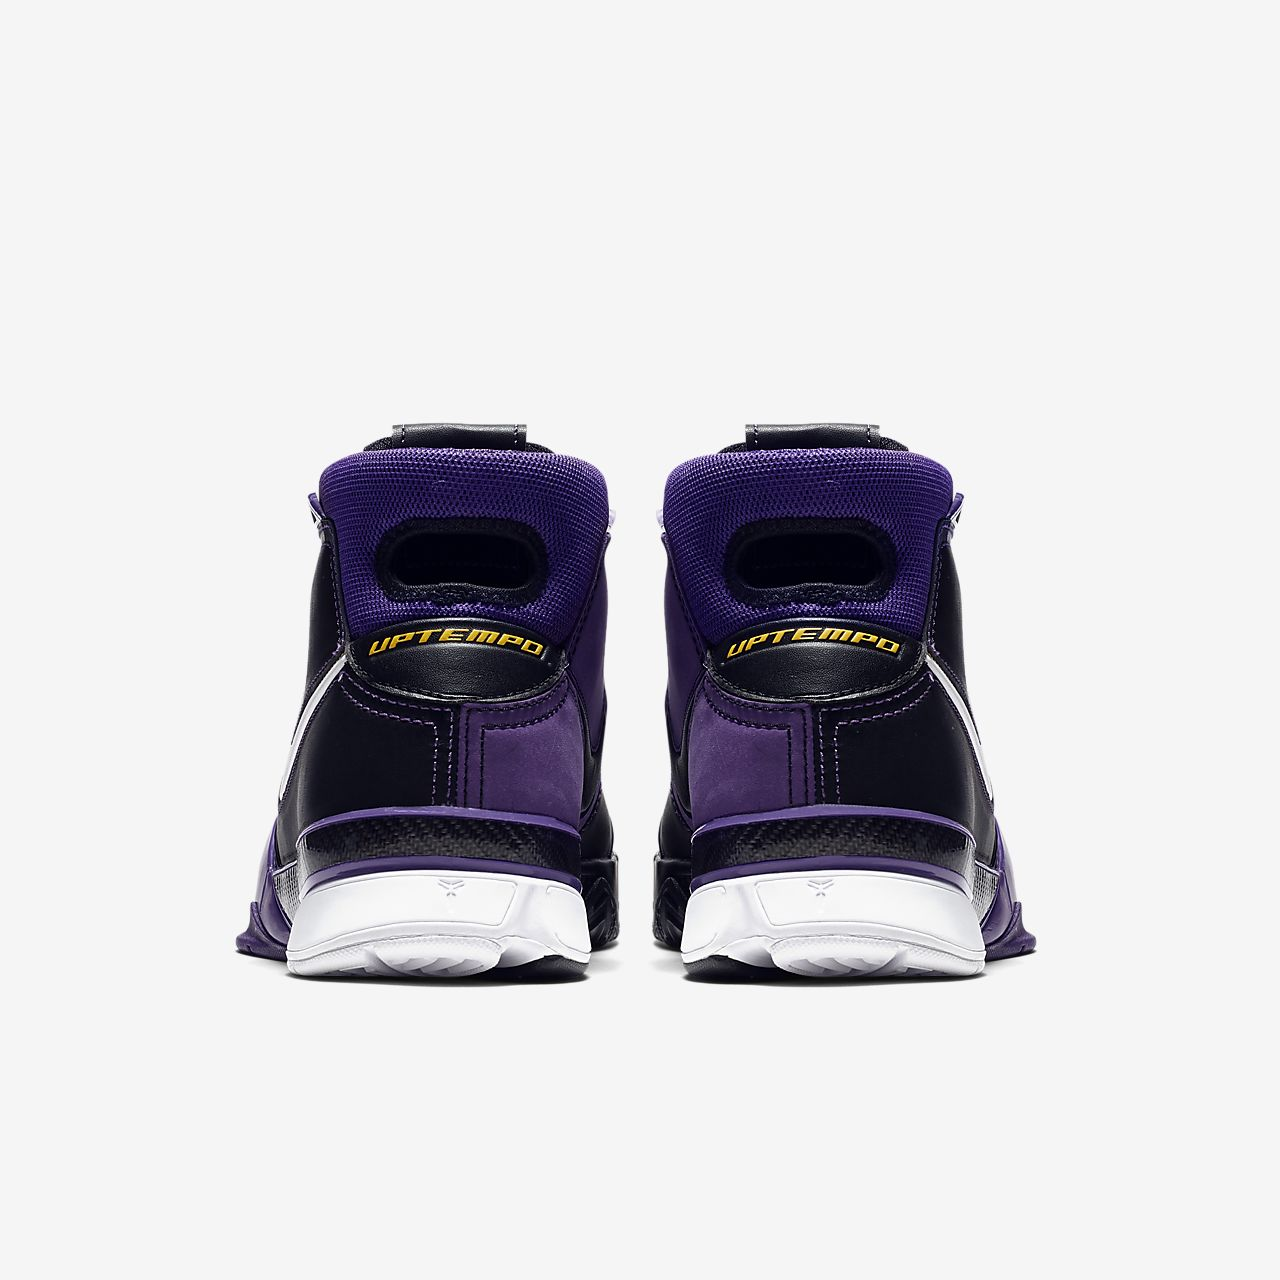 50923d06a70d Low Resolution Kobe 1 Protro Basketballschuh Kobe 1 Protro Basketballschuh